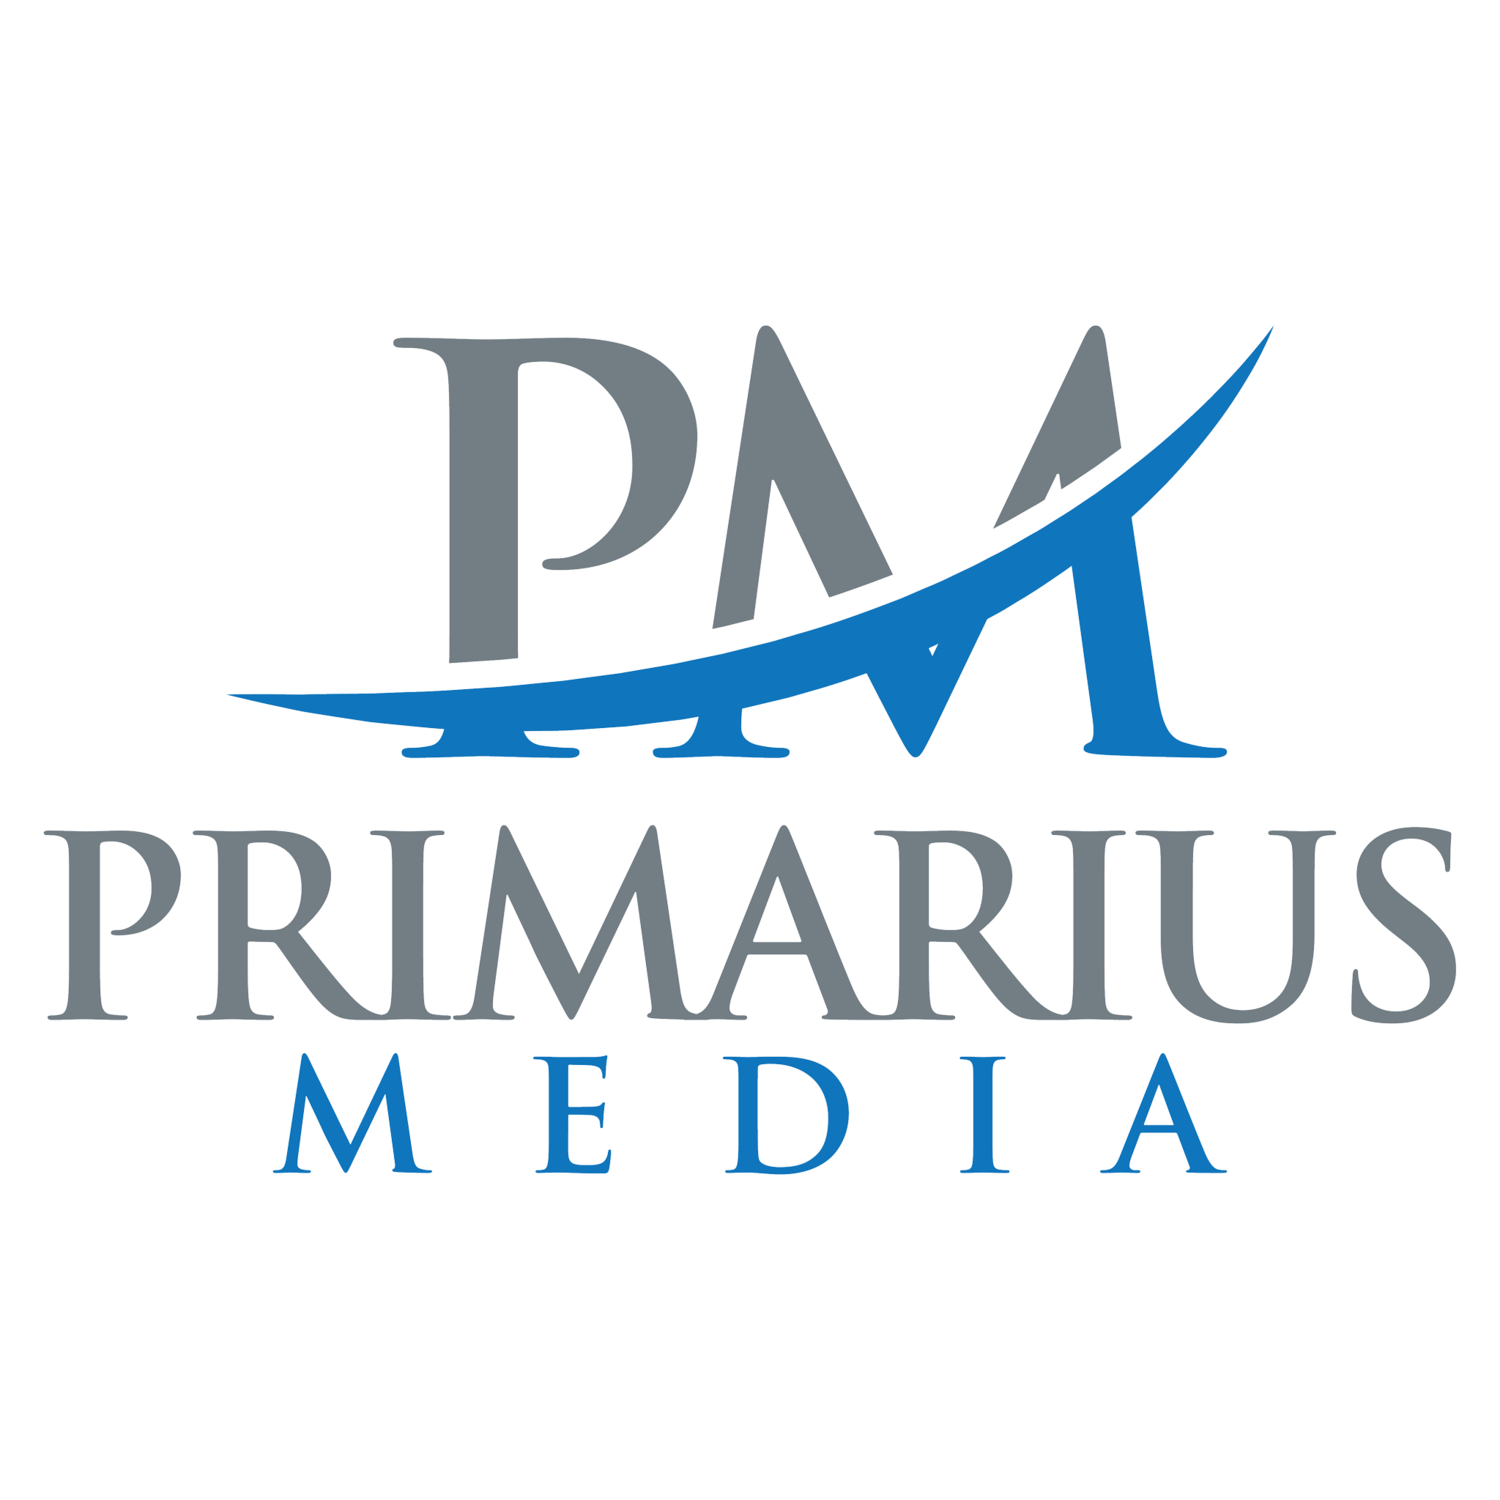 Primarius Media LLC